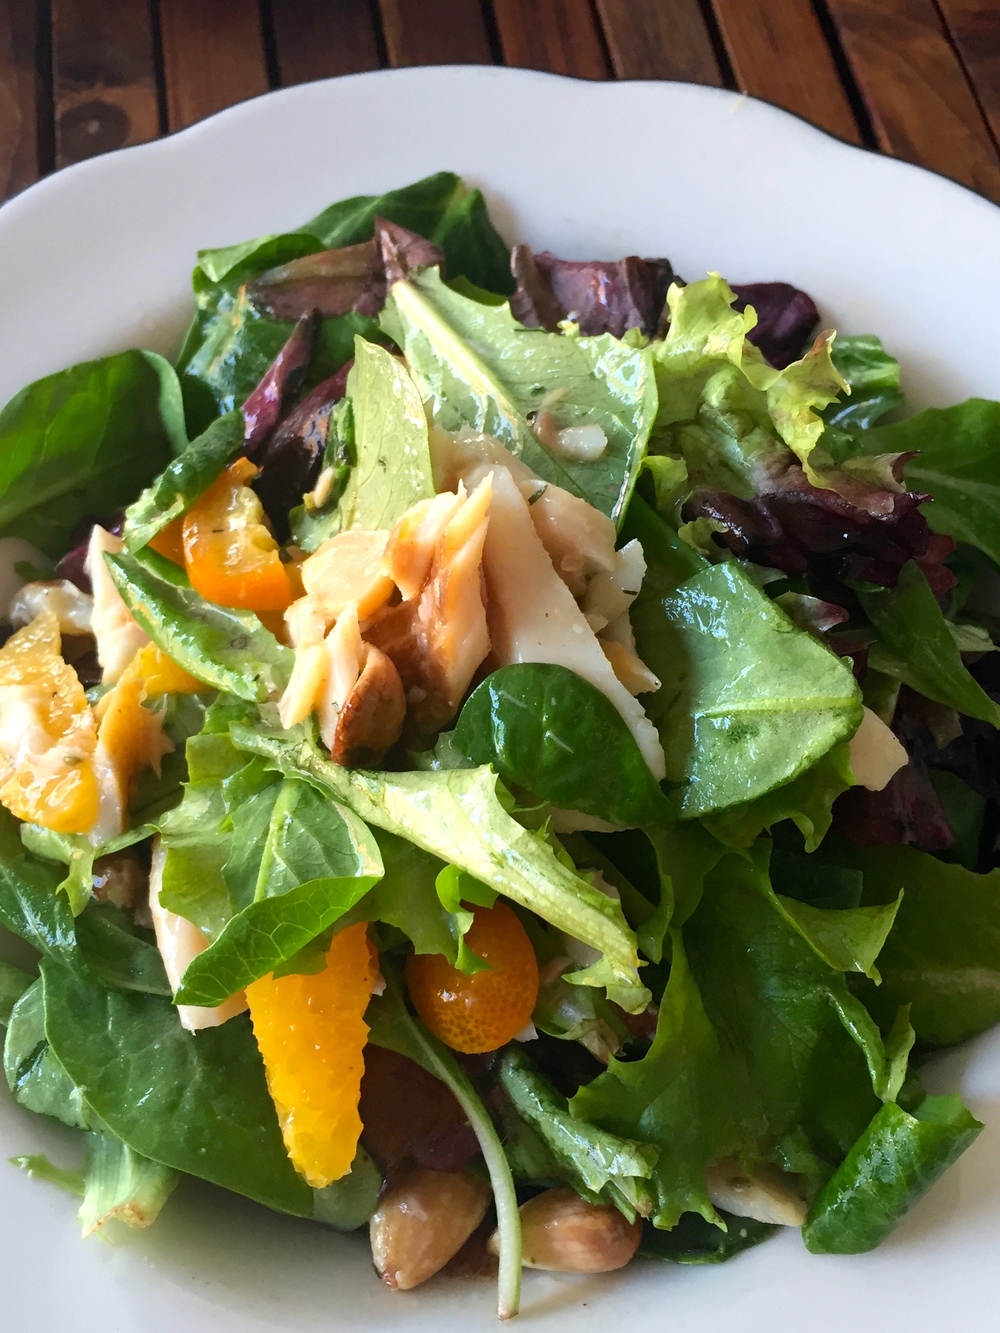 Smoked Trout Salad within-houseapplewood smoked rainbow trout, market lettuce,kumquat, citrus, almonds, dill, and champagne vinaigrette.